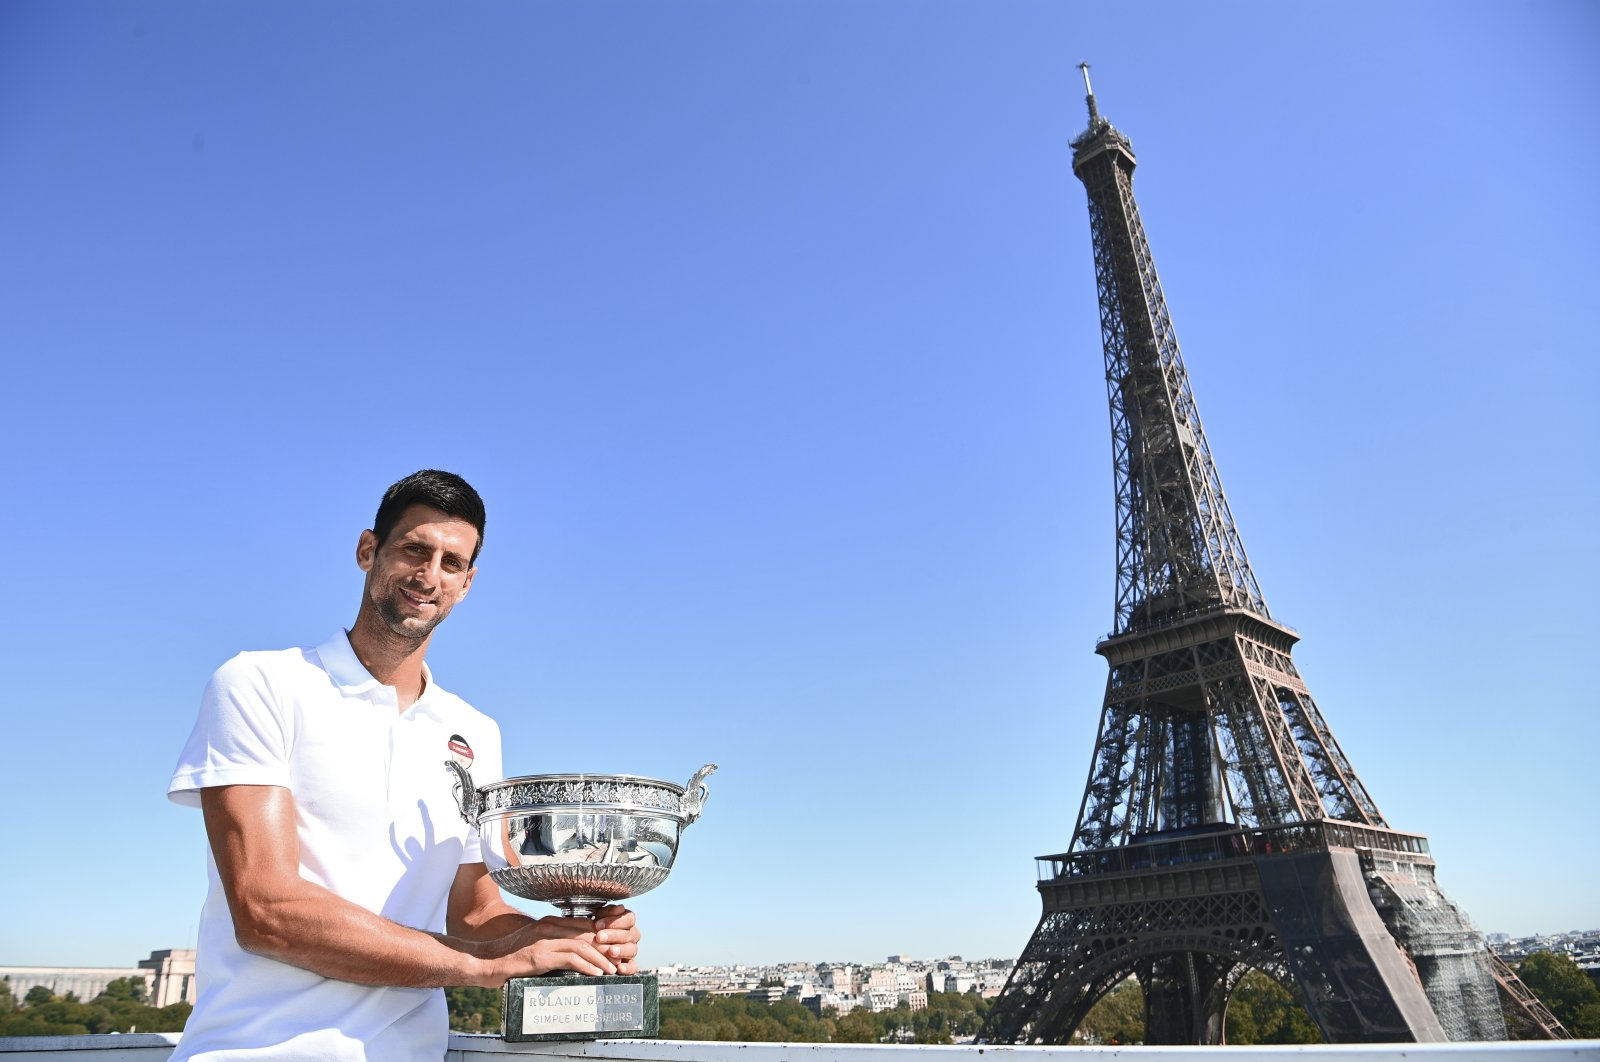 Serbia's Novak Djokovic poses with the trophy in front of the Eiffel tower during a photocall, Paris, France, June 14, 2021. (AP Photo)